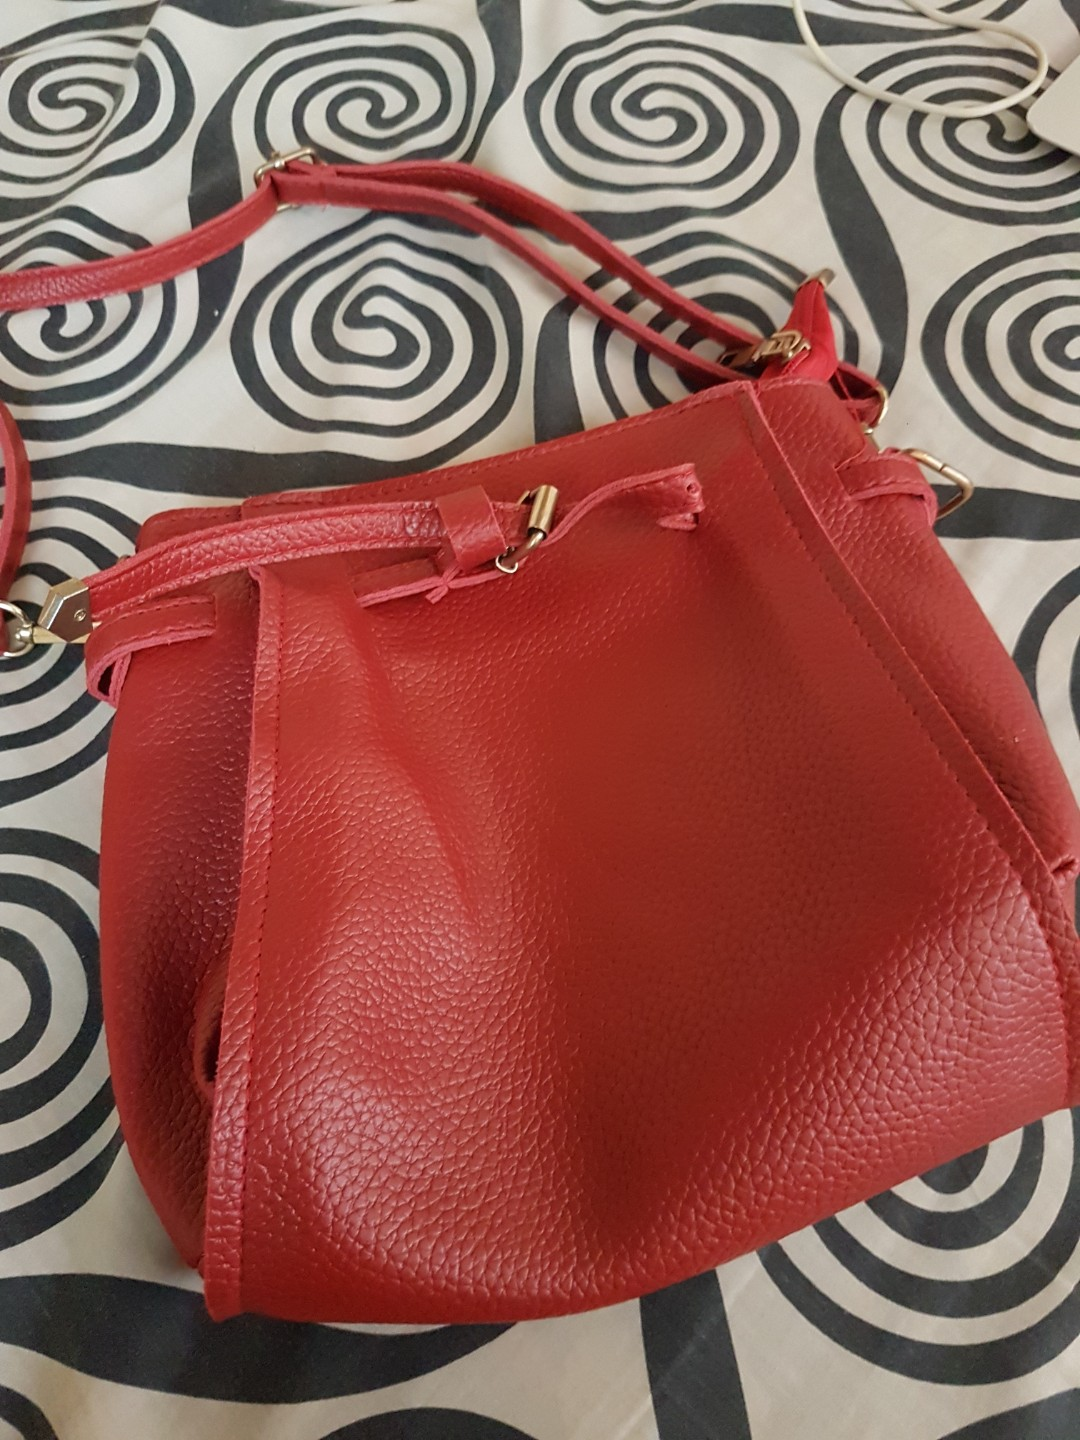 Small red sling bag 😊